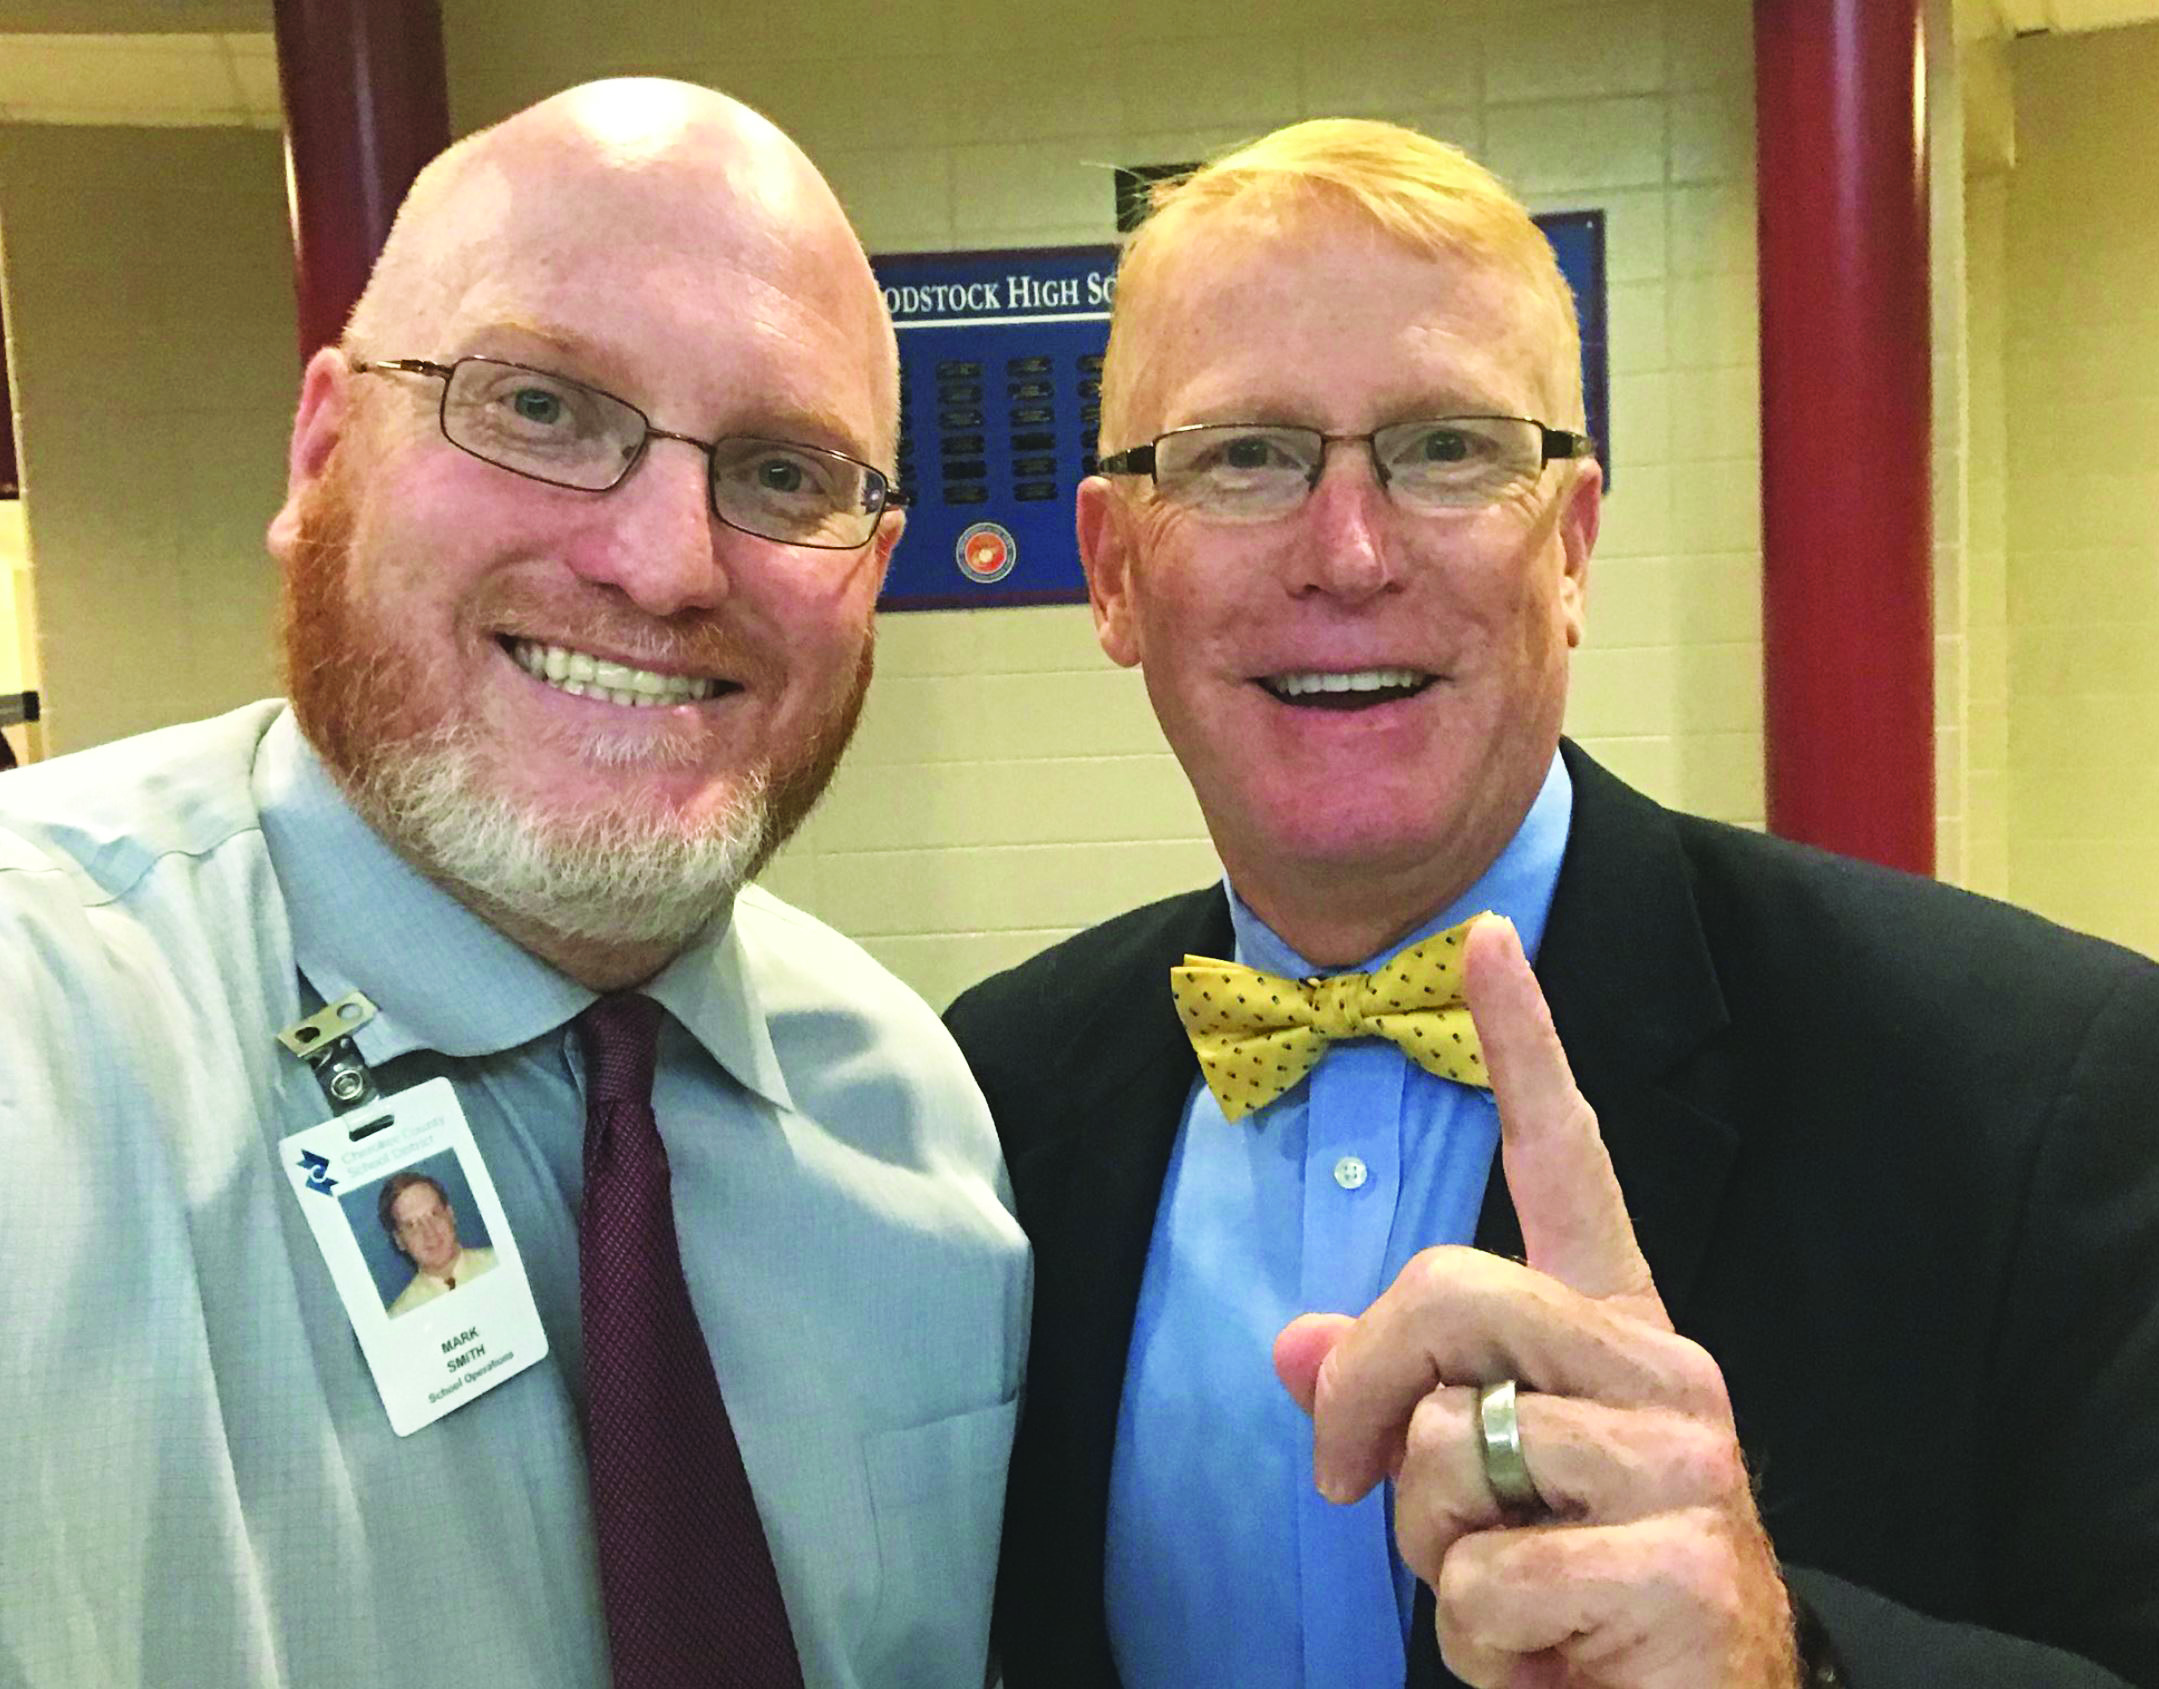 CCSD Superintendent of Schools Dr. Brian V. Hightower, right, visits with Woodstock High School Principal Mark Smith on #CCSD1stDay.